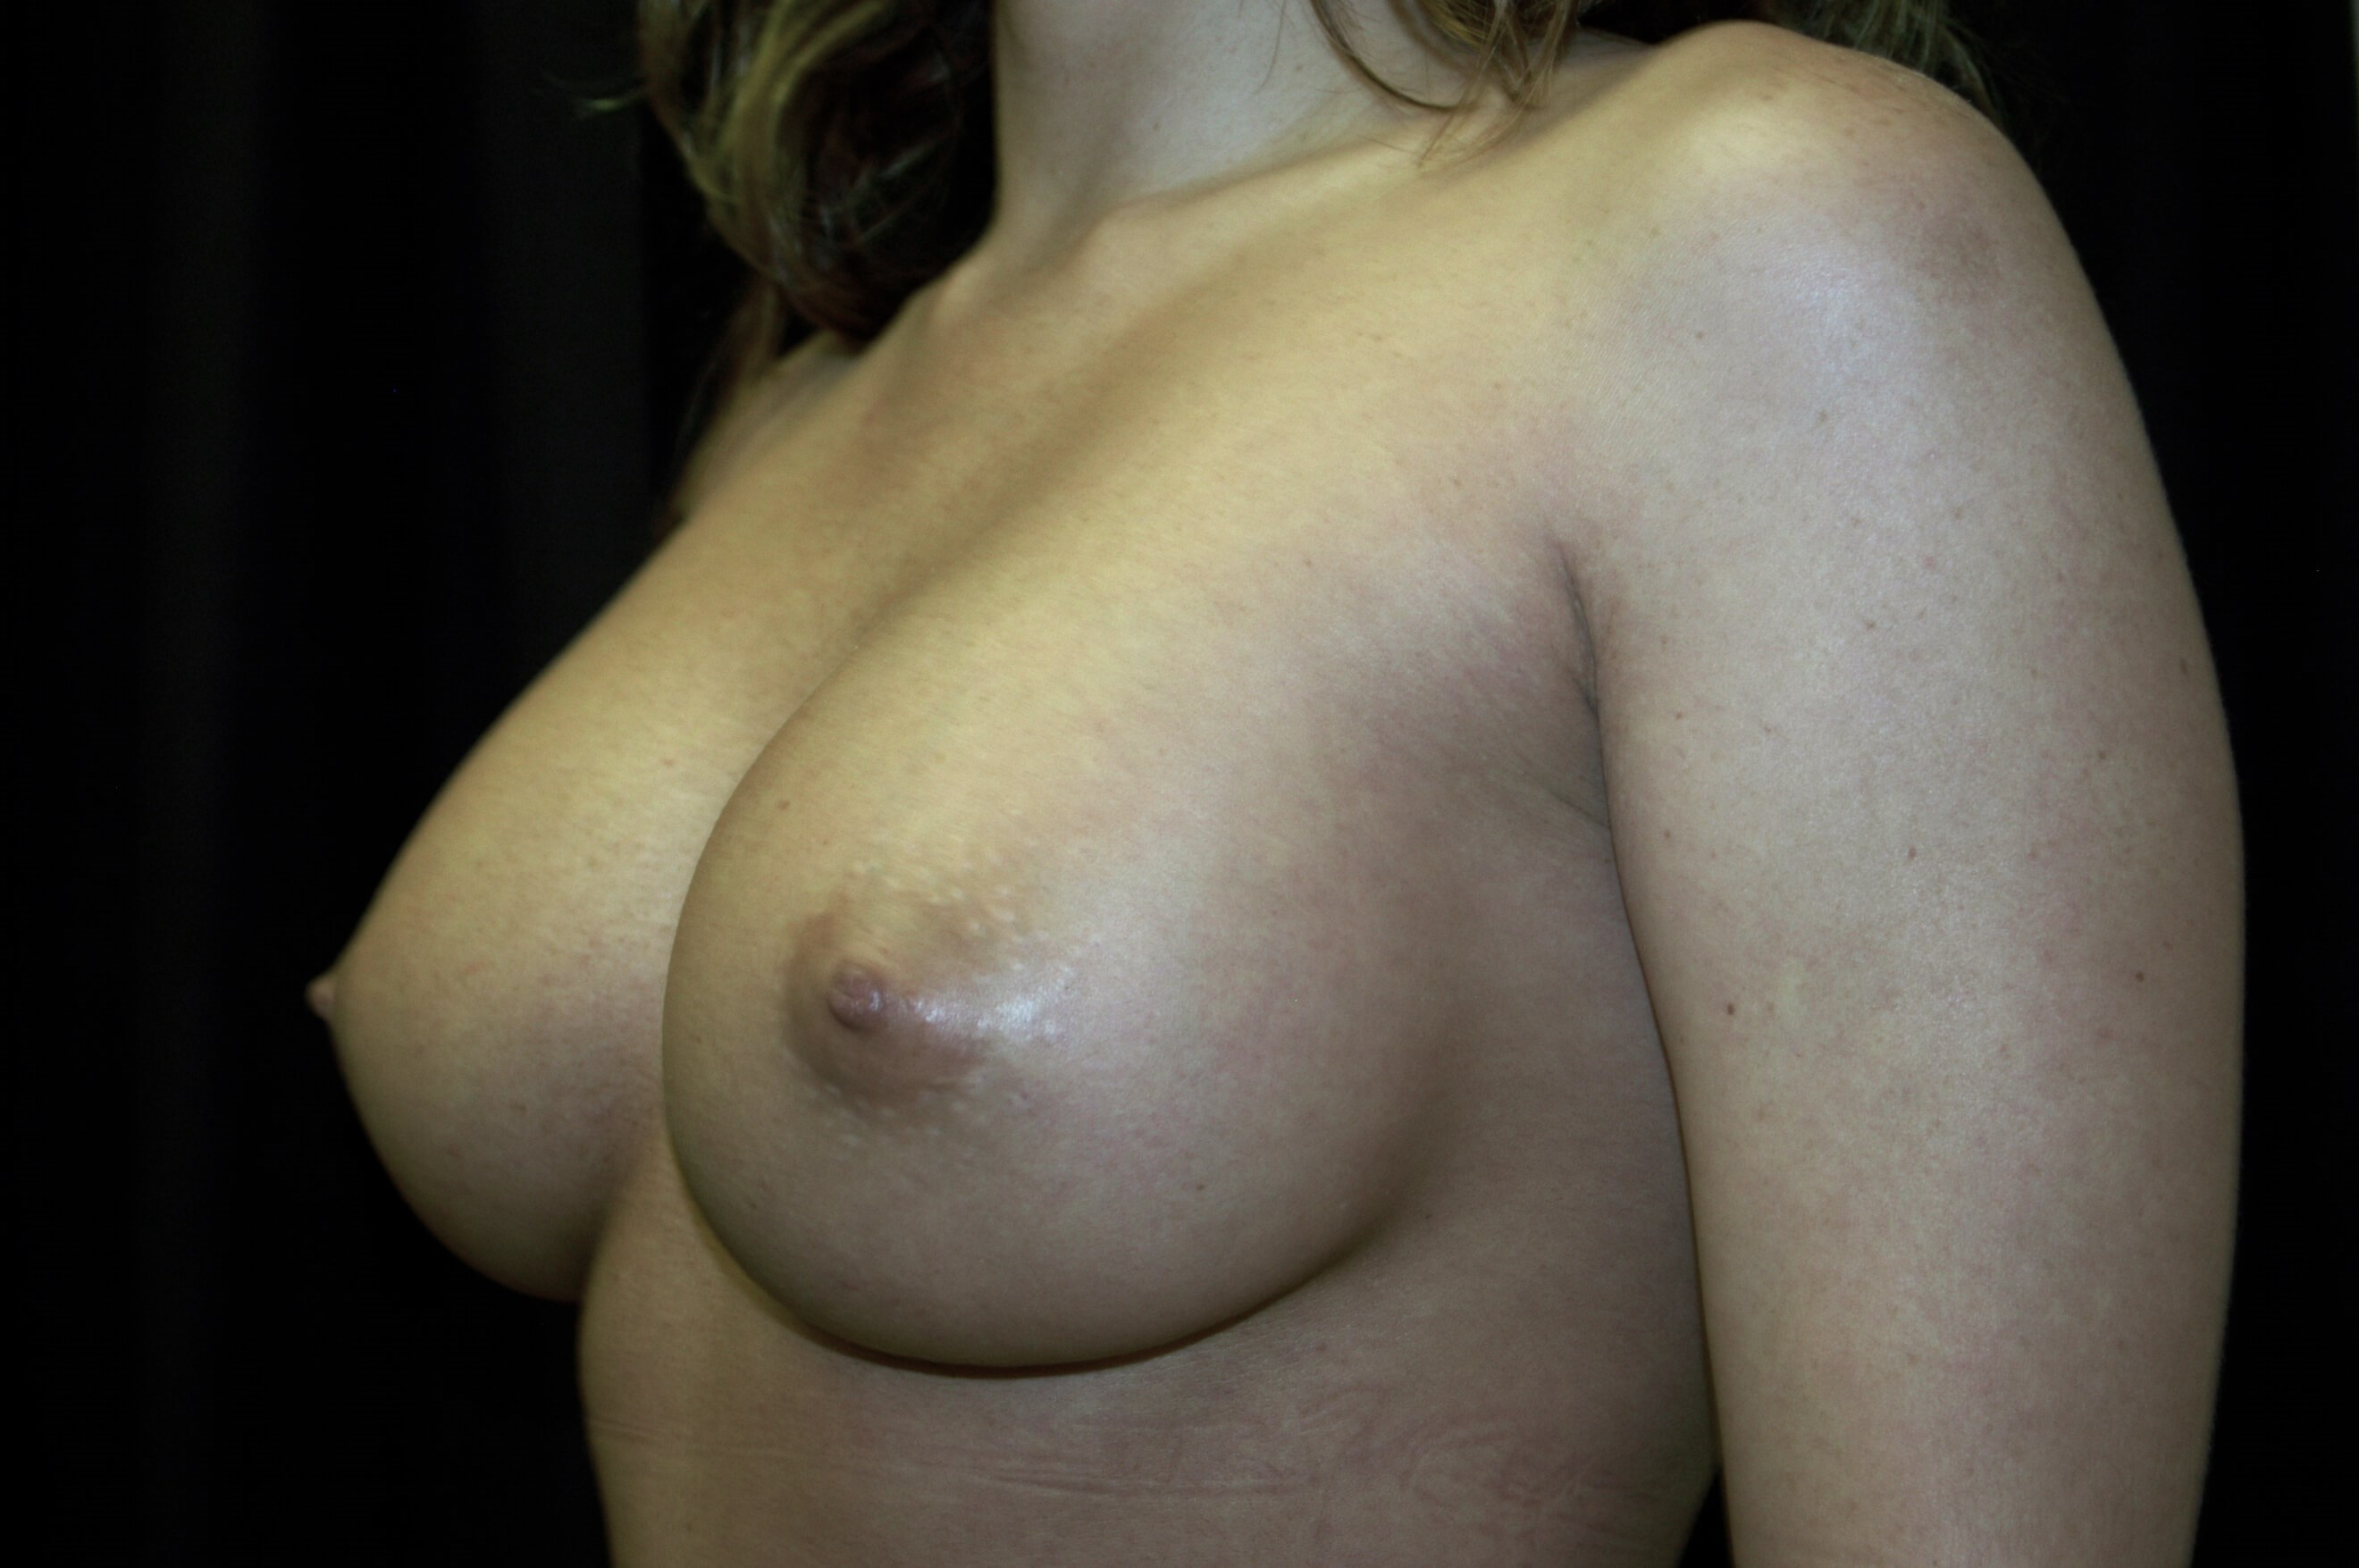 WOMAN IN DALLAS, TEXAS HAS BREAST AUGMENTATION REVISION WITH NEW BREAST IMPLANTS